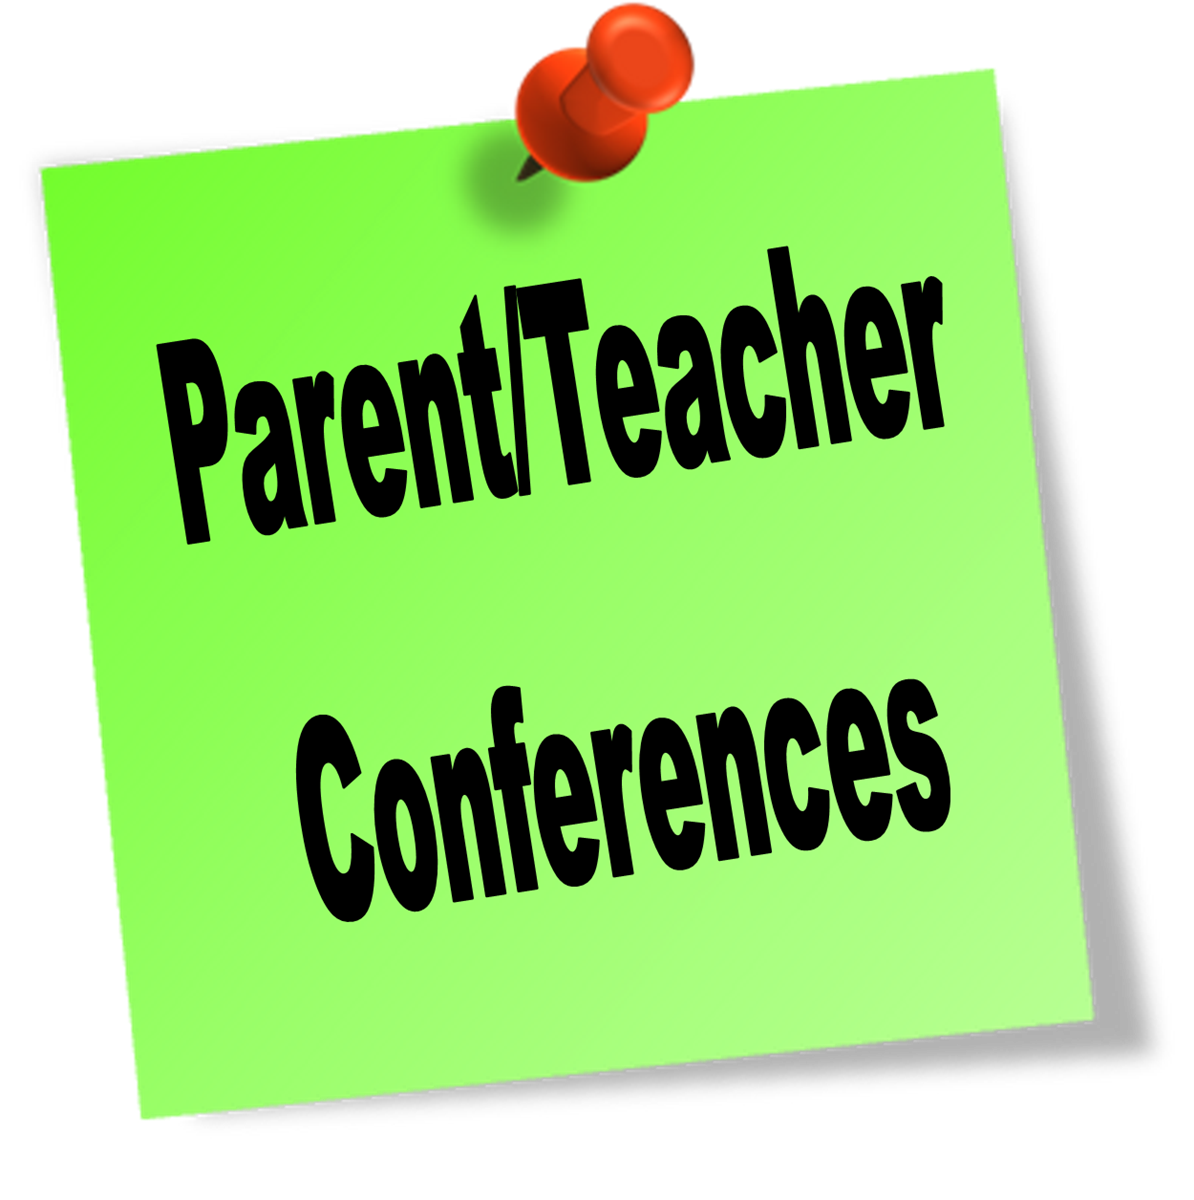 png transparent Free school conferences cliparts. Conference clipart week